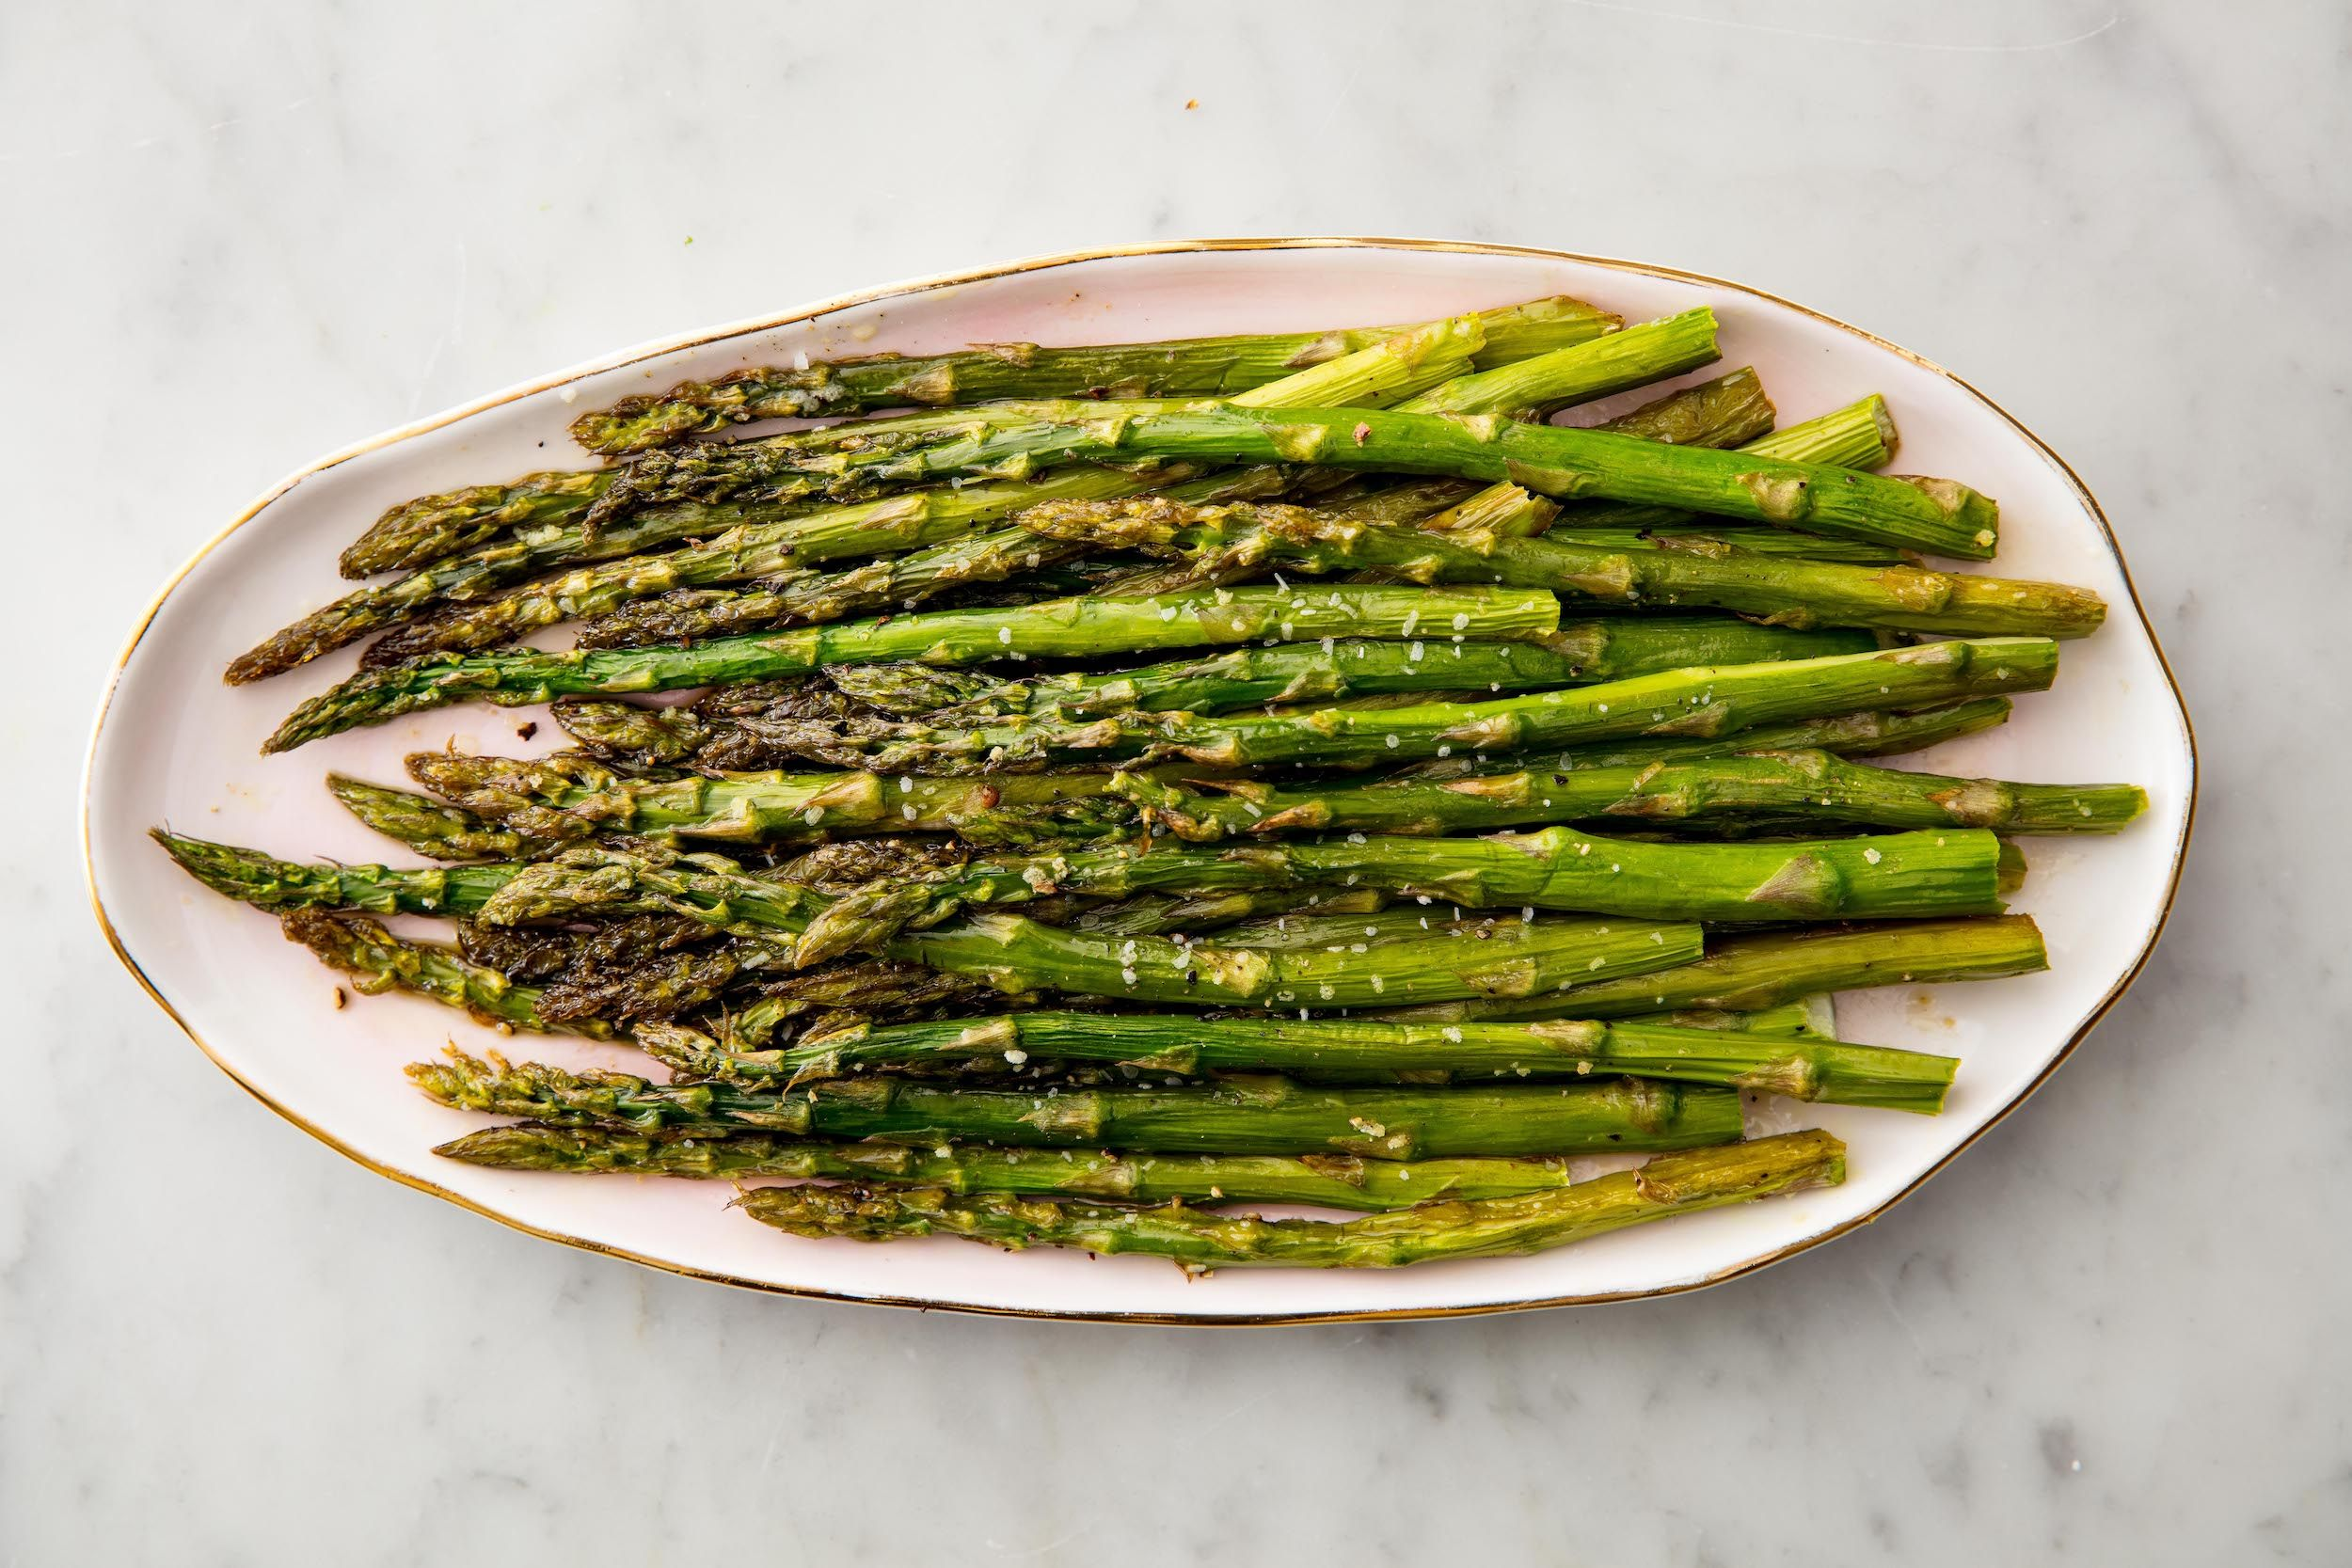 Best Oven Roasted Asparagus Recipe How To Roast And Bake Asparagus